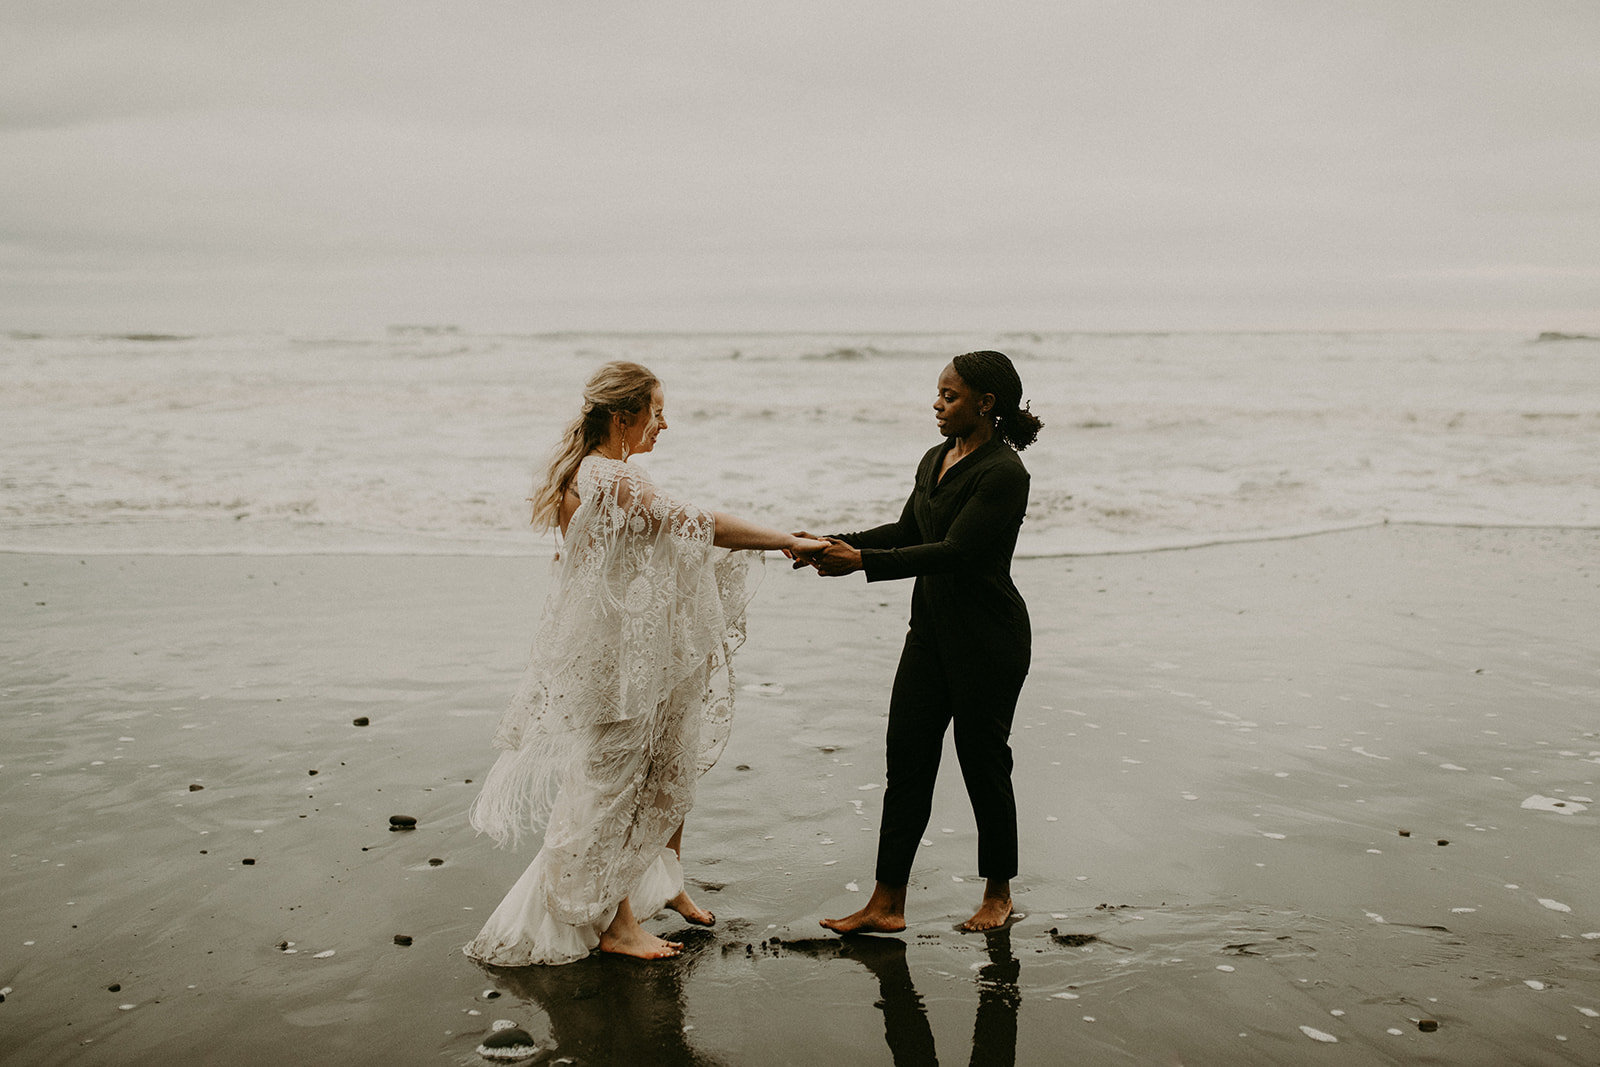 Ruby_Beach_Styled_Elopement_-_Run_Away_with_Me_Elopement_Collective_-_Kamra_Fuller_Photography_-_Portraits-174